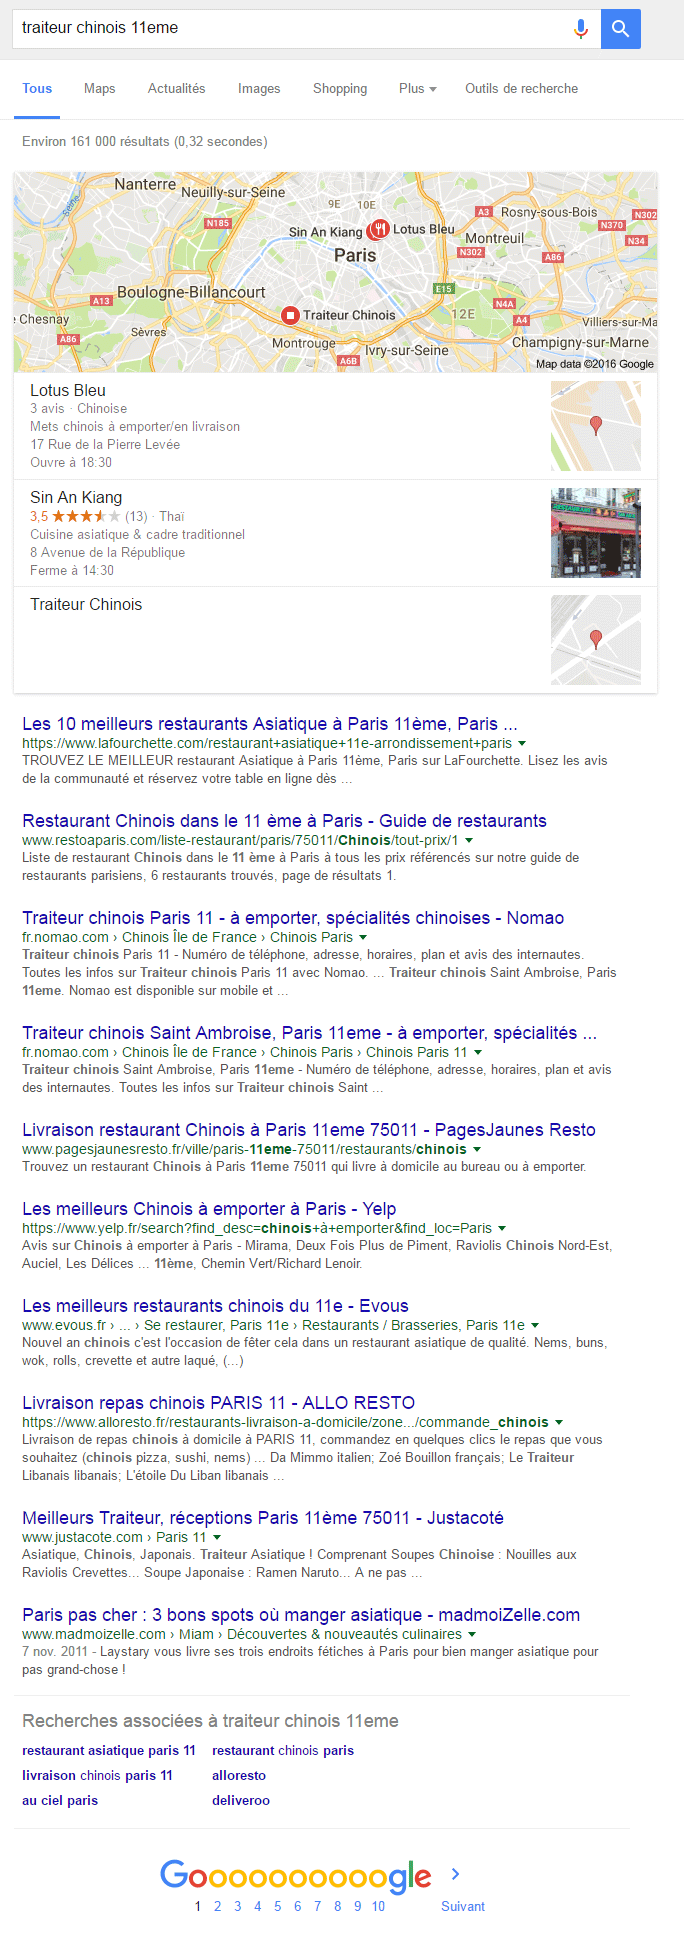 rankbrain google seo screenshot